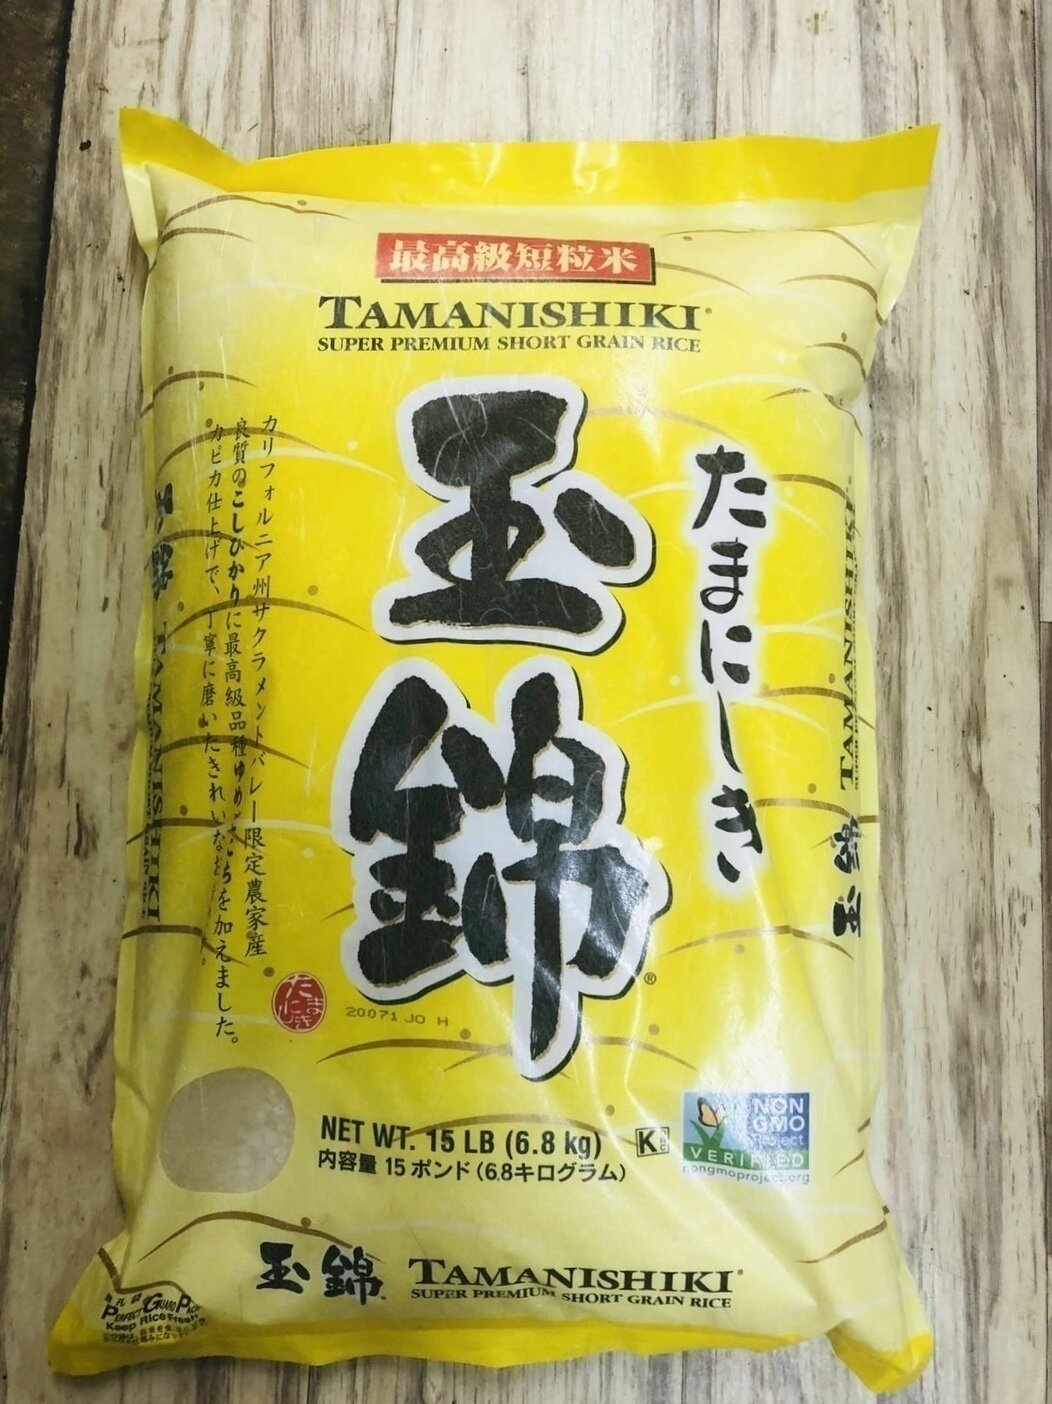 玉锦 短粒米 ~15lb Tamanishiki Super Rrem Rice ~15lb